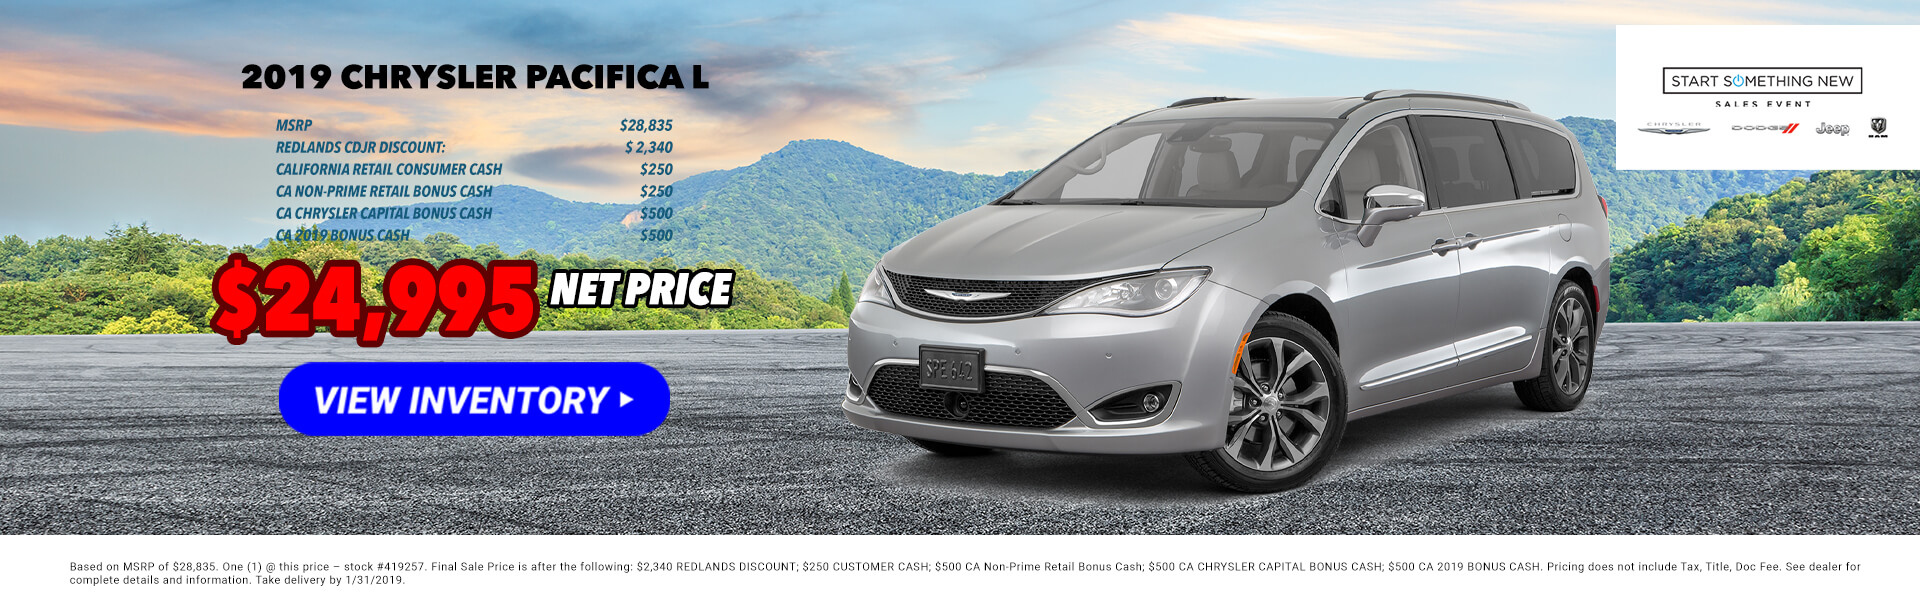 2019 Chrysler Pacifica 419257